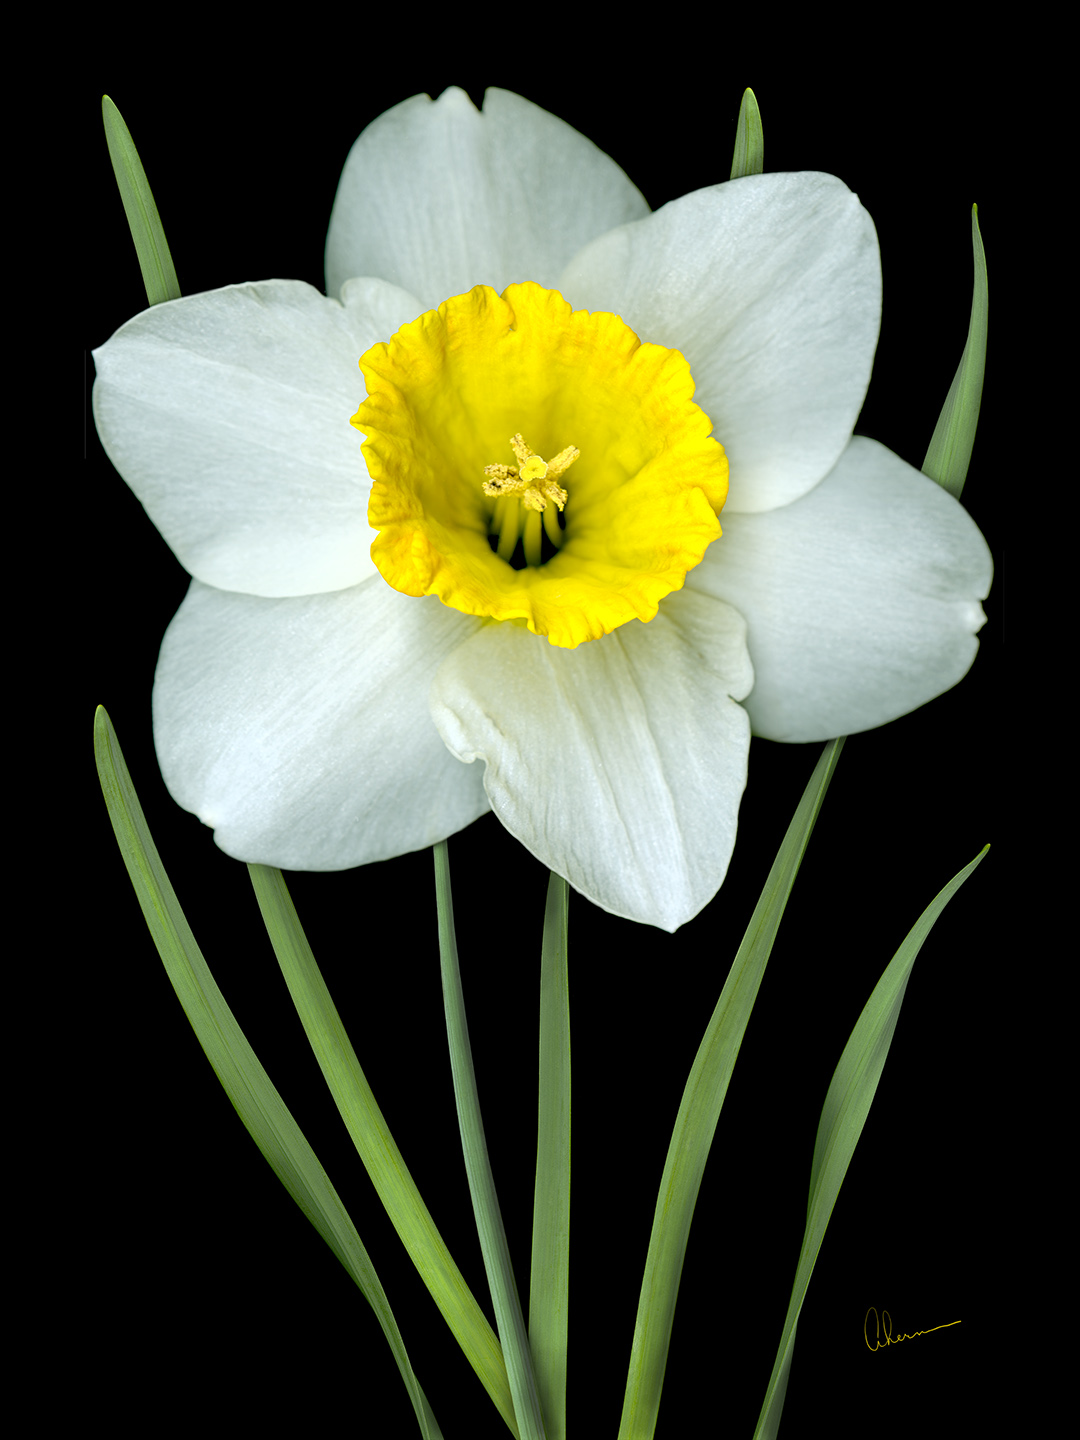 Single White Daffodil on Black Background